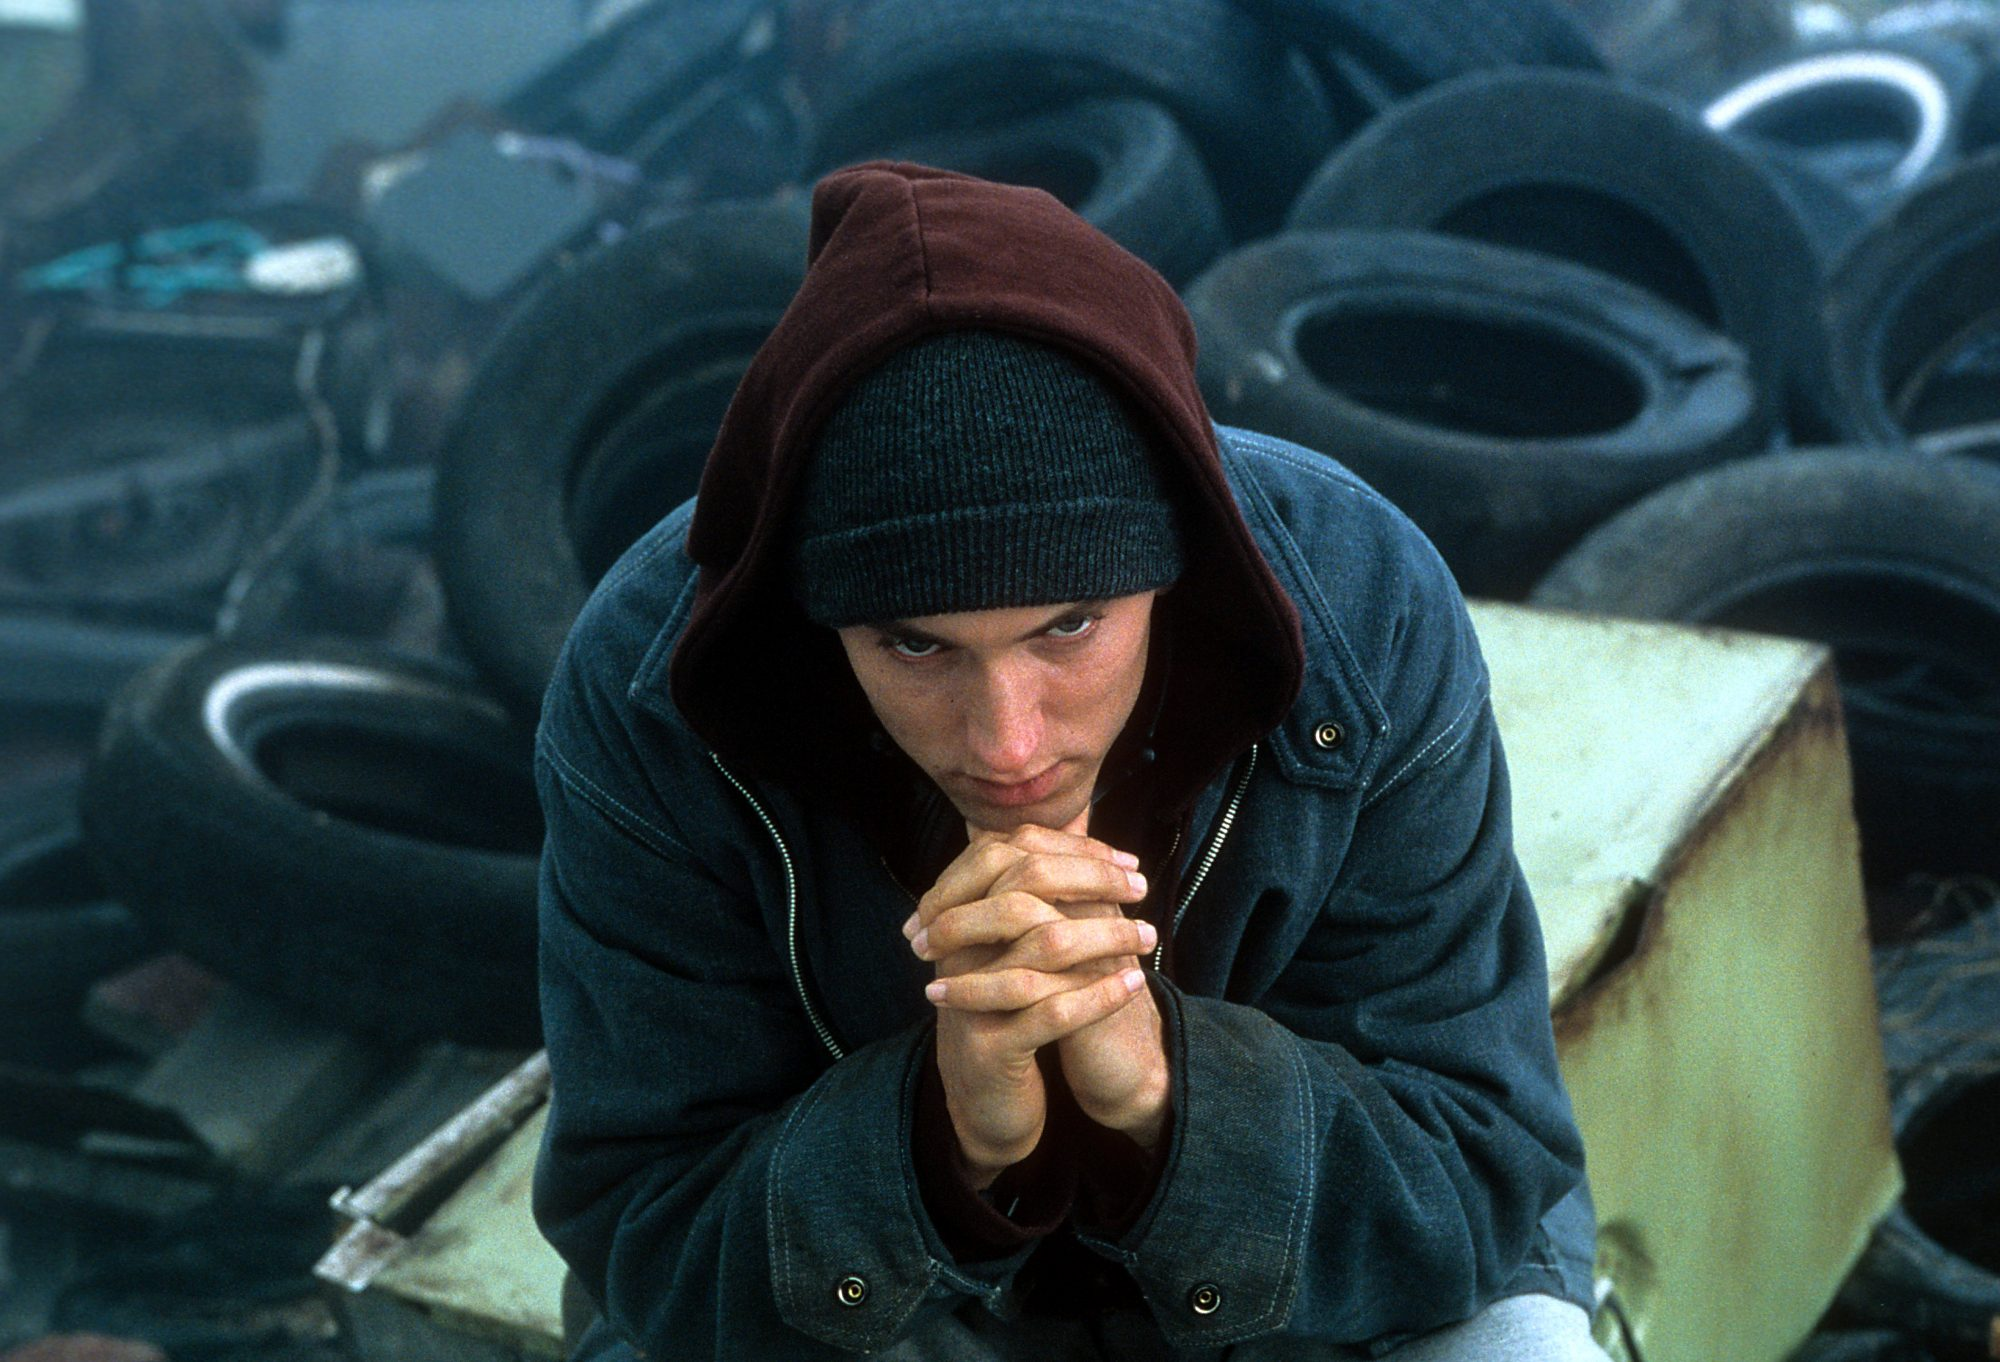 Eminem in the film '8 Mile'